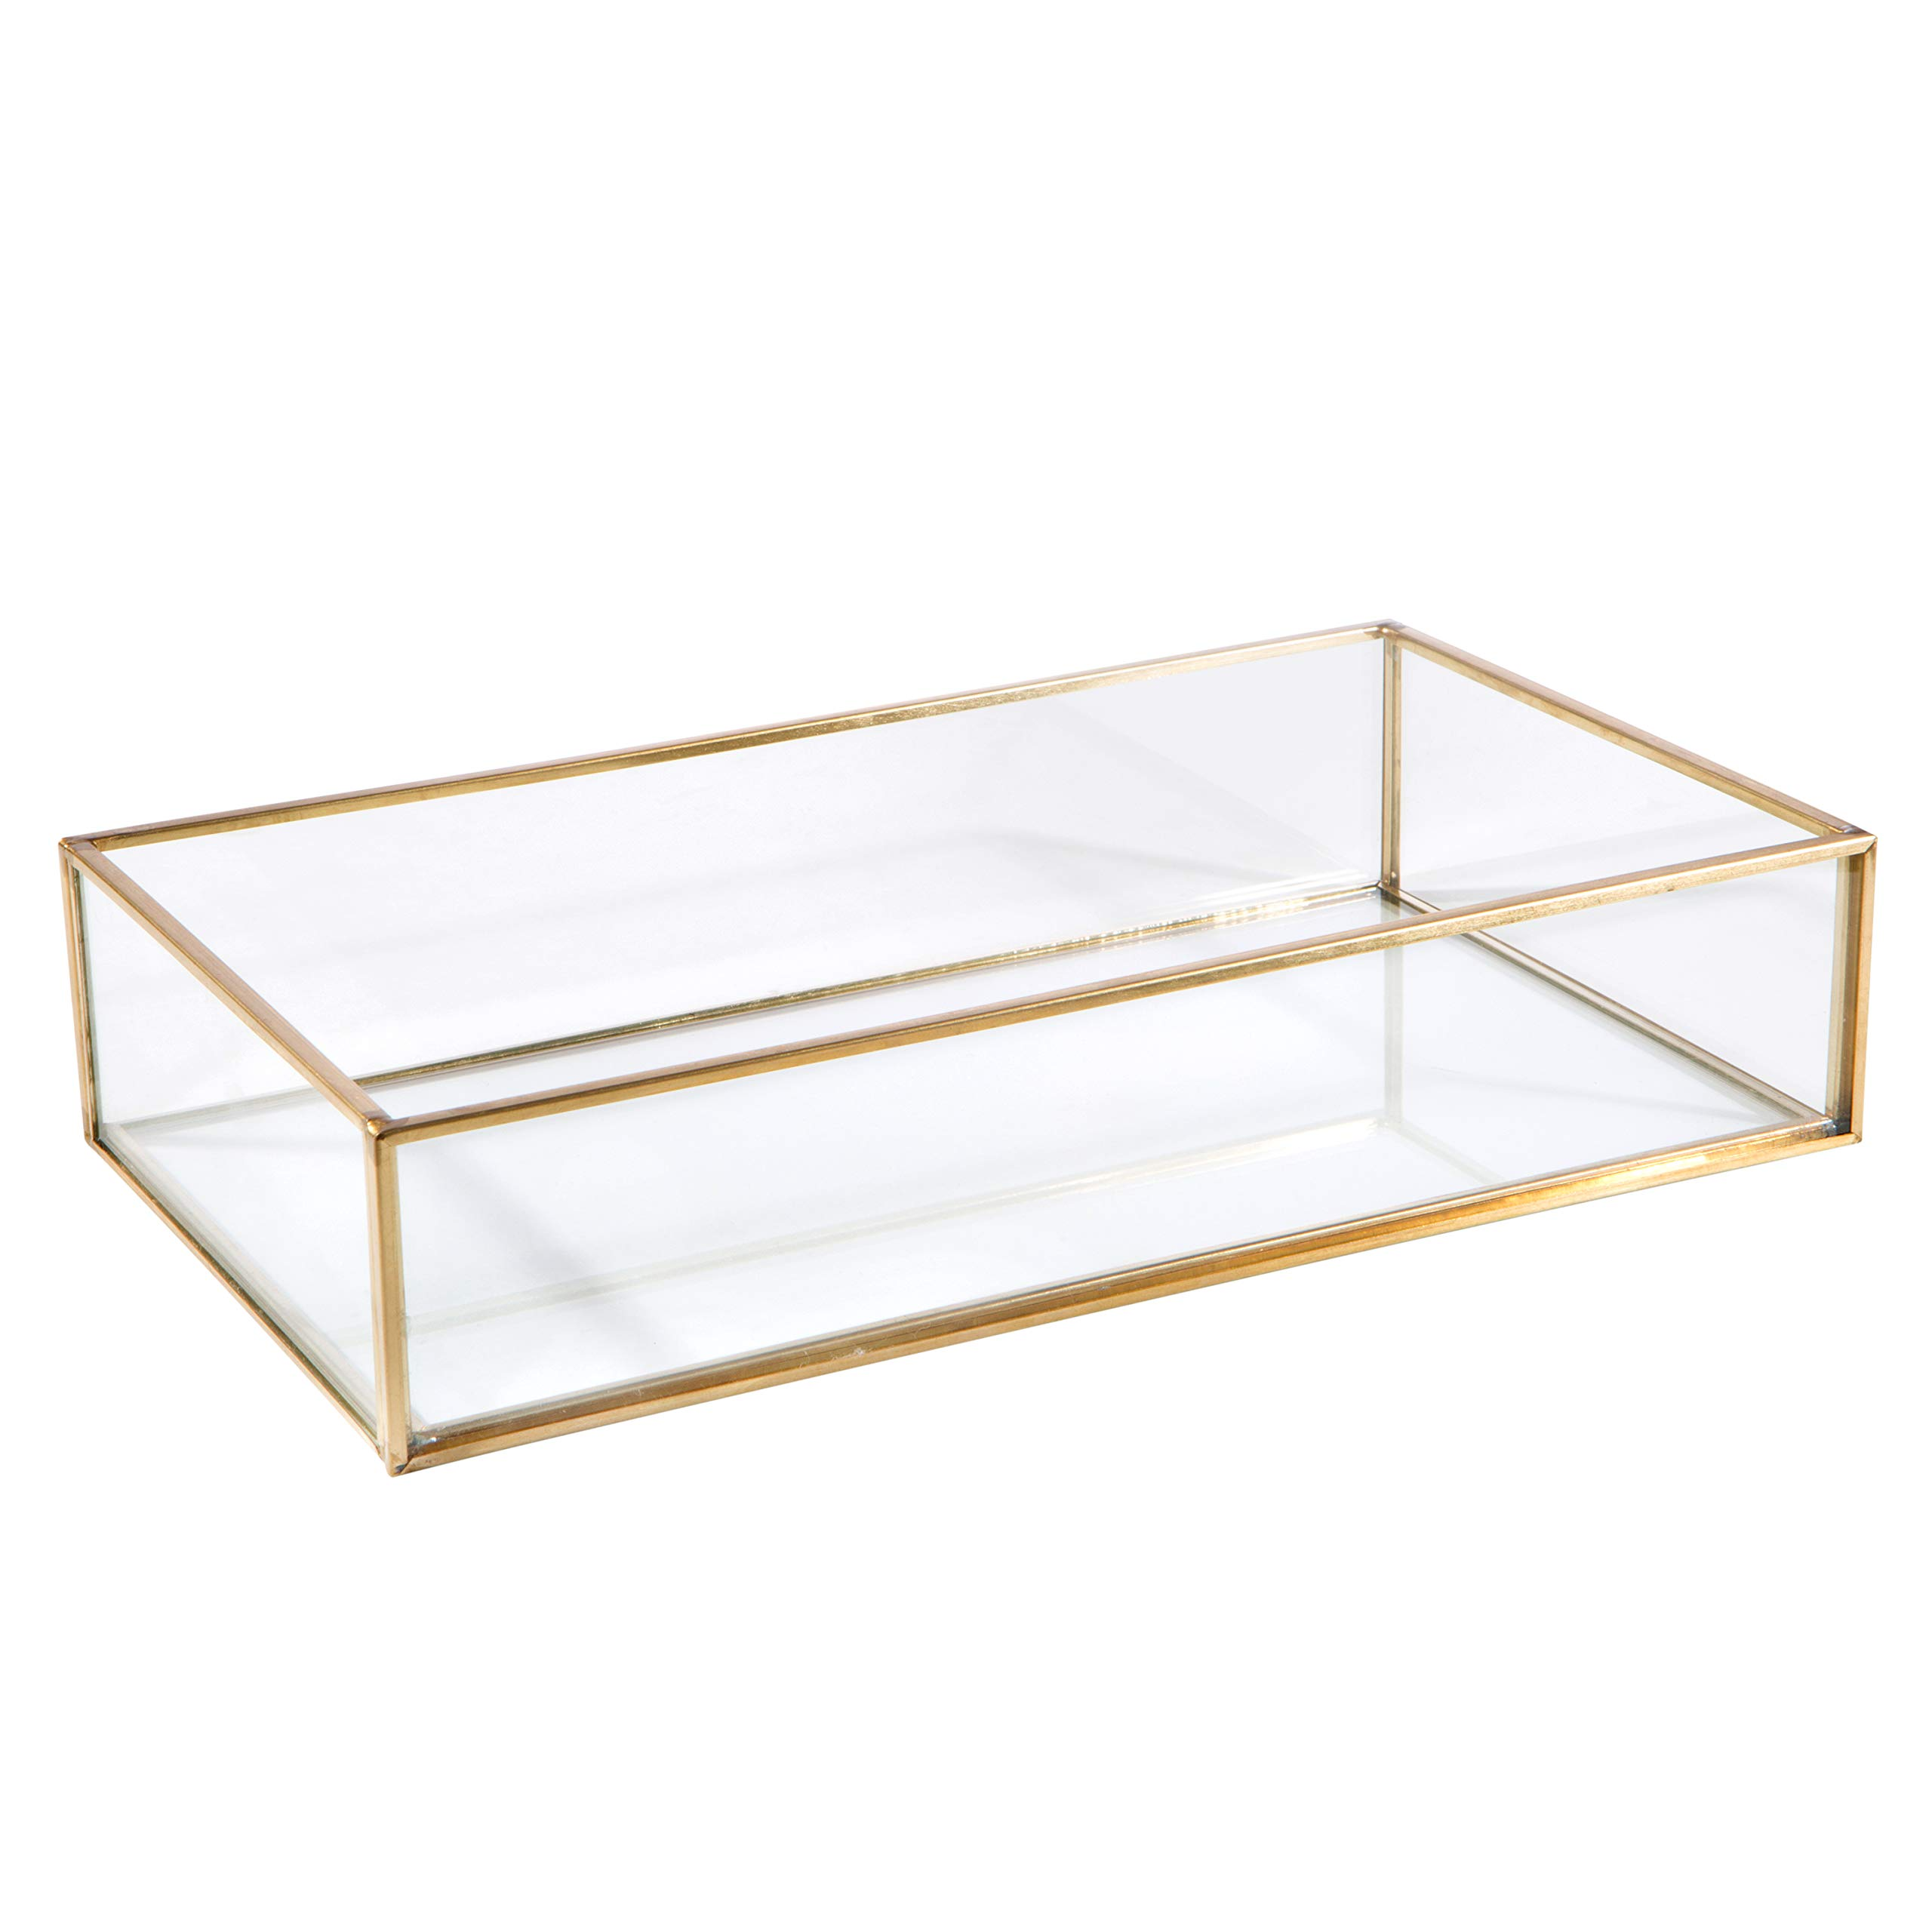 Home Details Vintage Mirrored Bottom Glass Keepsake Box Jewelry Organizer, Decorative Accent, Vanity, Wedding Bridal Party Gift, Candy Table Décor Jars & Boxes, Gold by Home Details